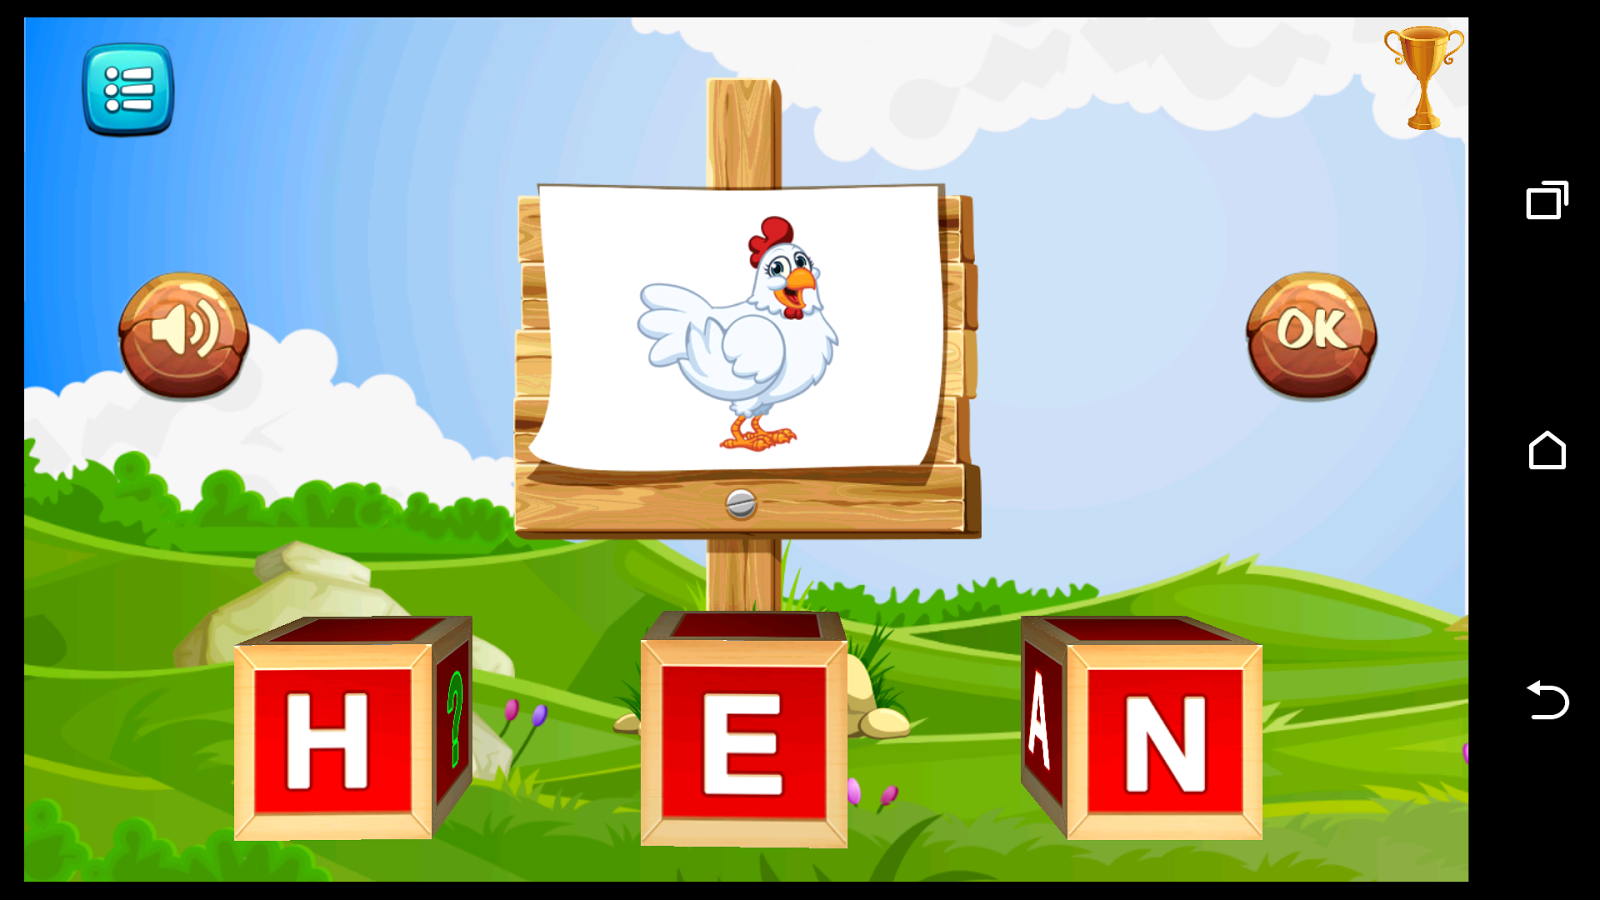 Worksheet Learn To Read For Preschoolers preschool learn to read android apps on google play screenshot